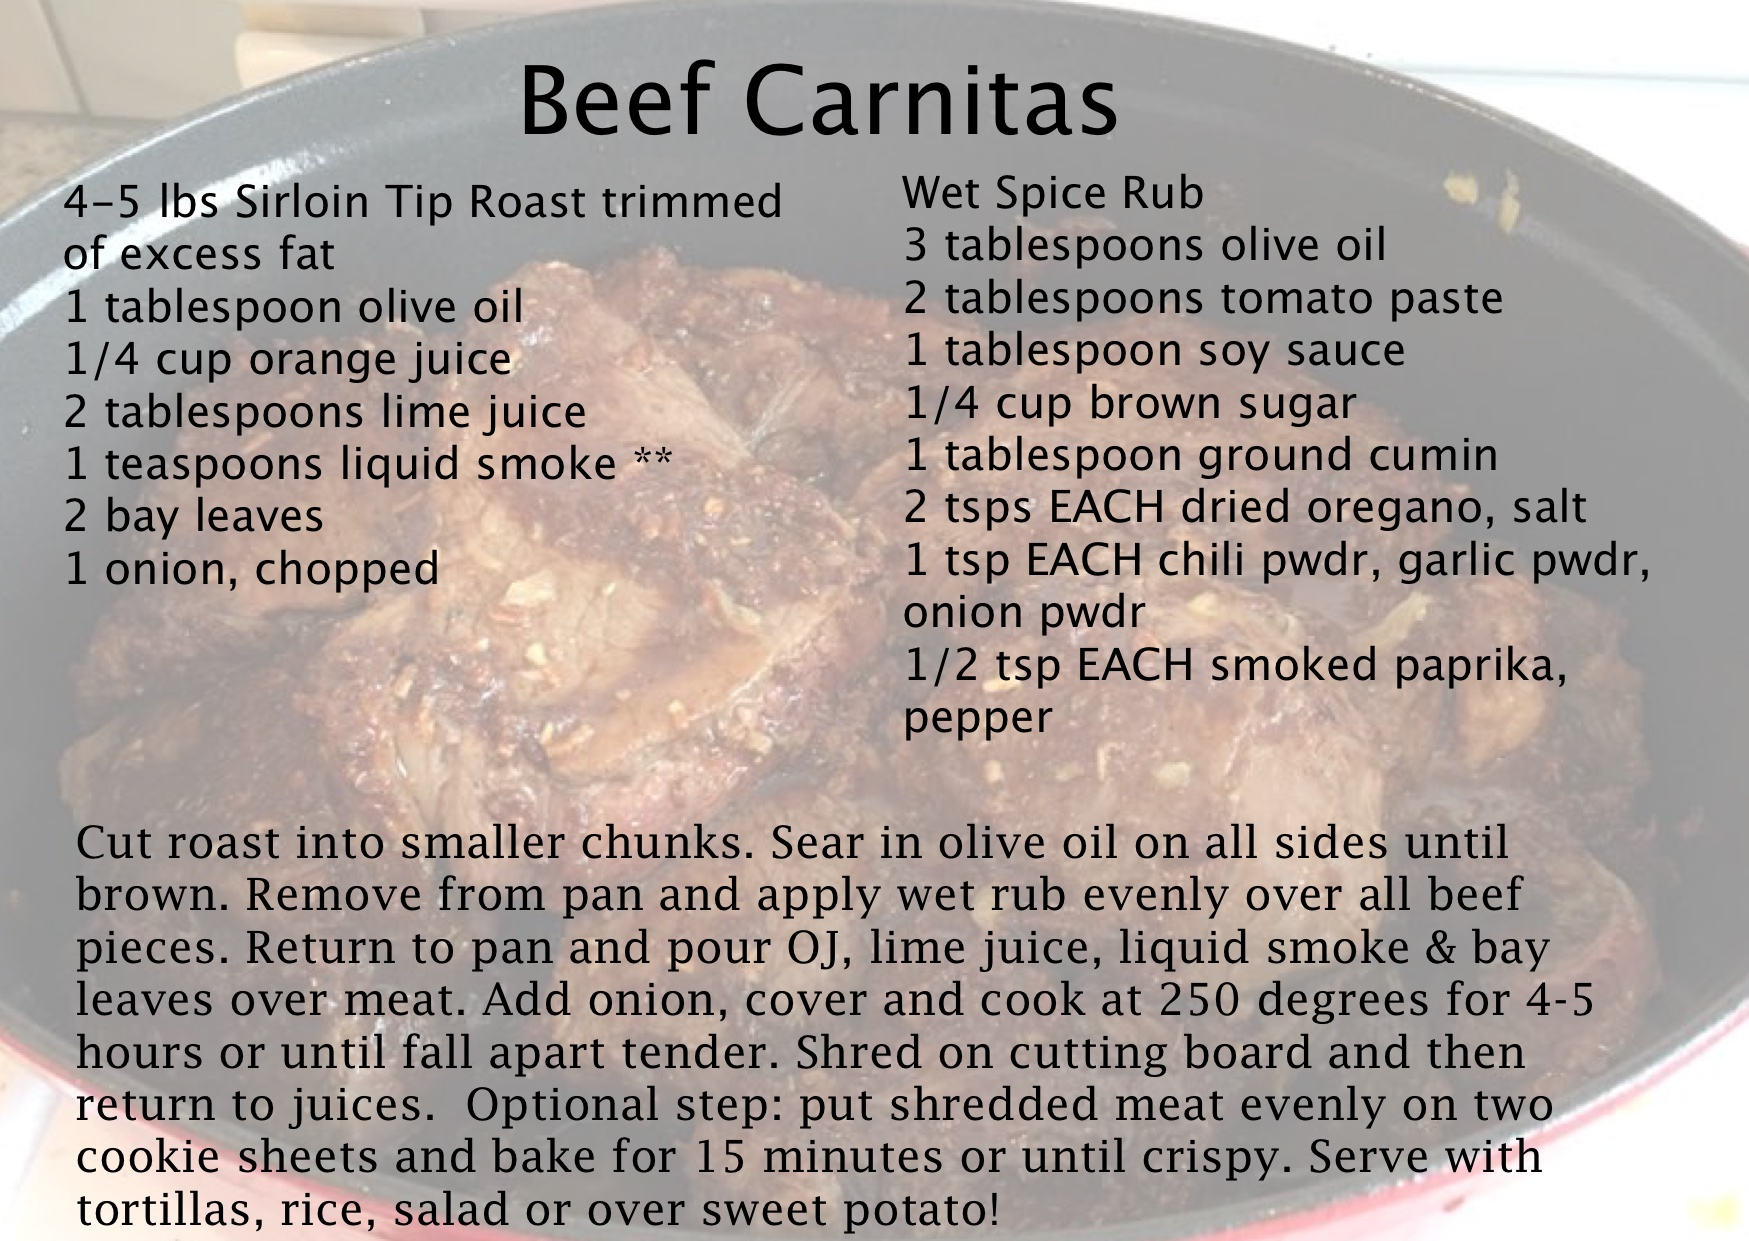 This is currently my FAVORITE recipe. I first used it on a pork loin, but after trying it on a sirloin tip roast there was no going back! I love to have it over a sweet potato for breakfast, lunch and dinner :) Its more labor intensive than I usually like, but I make a HUGE batch and have it for a week.